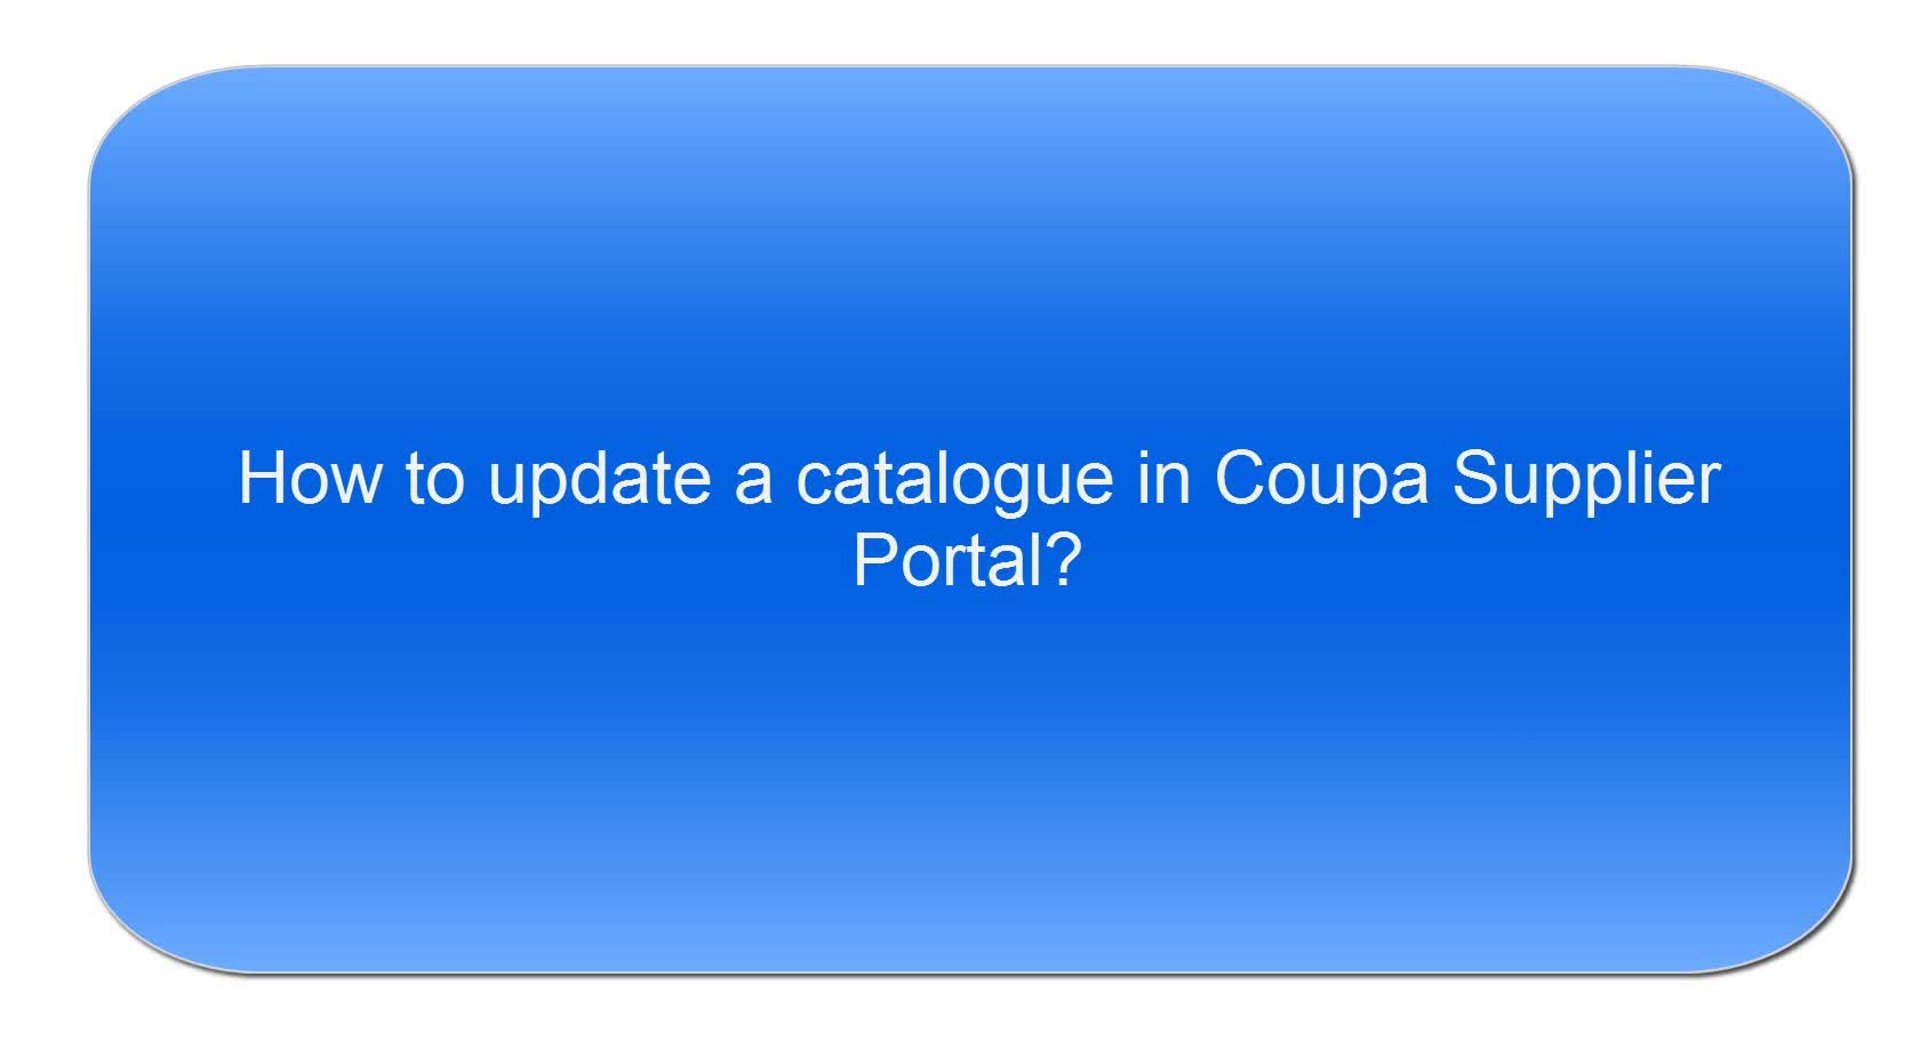 How to update a catalogue in Coupa Supplier Portal